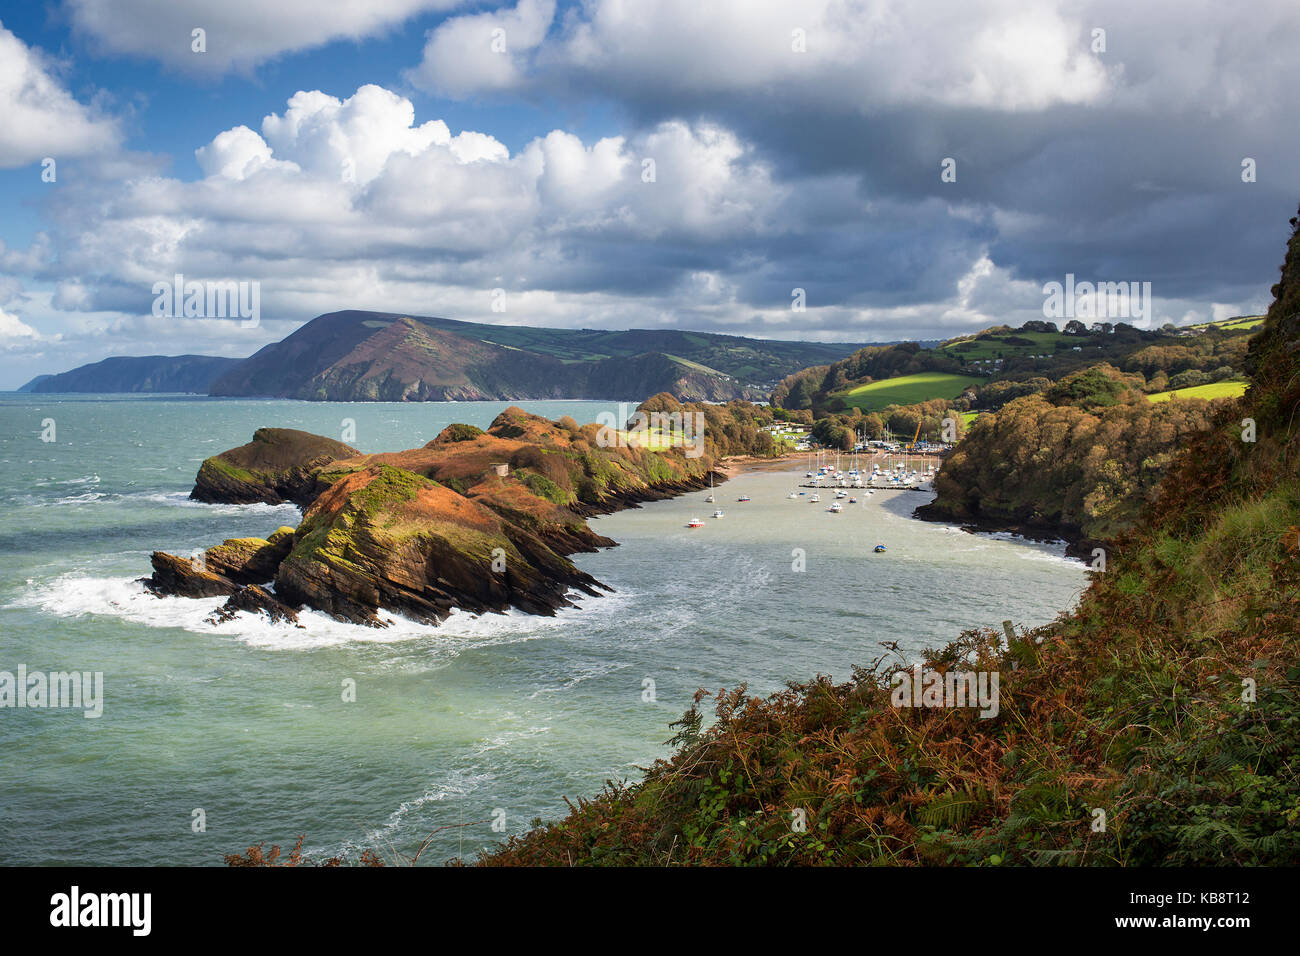 Coastal Scenery at Water Mouth Bay, near Ilfracombe in North Devon, UK - Stock Image